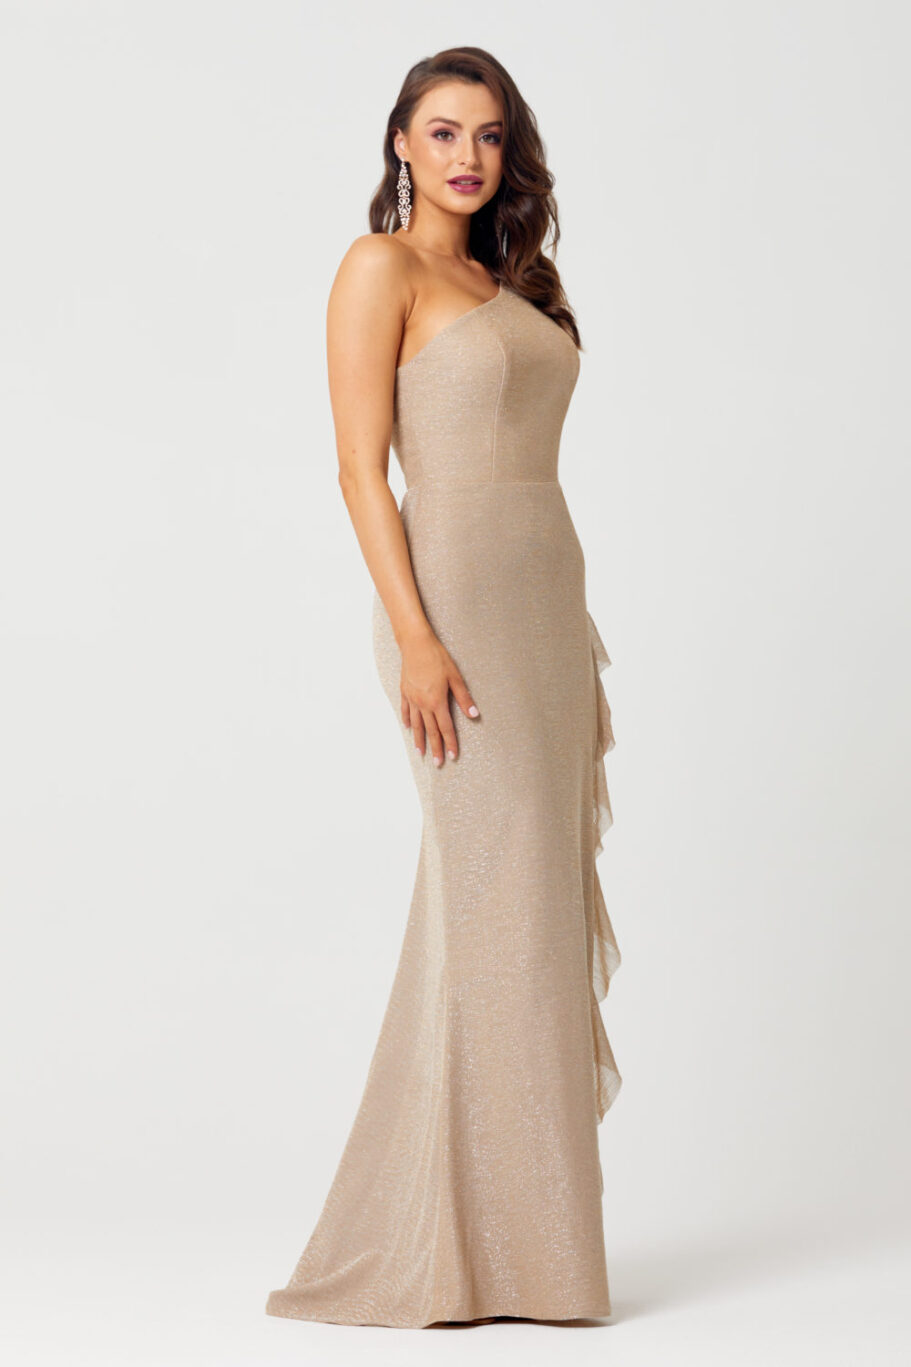 The Corinne One Shoulder Evening Dress - TC279-Side